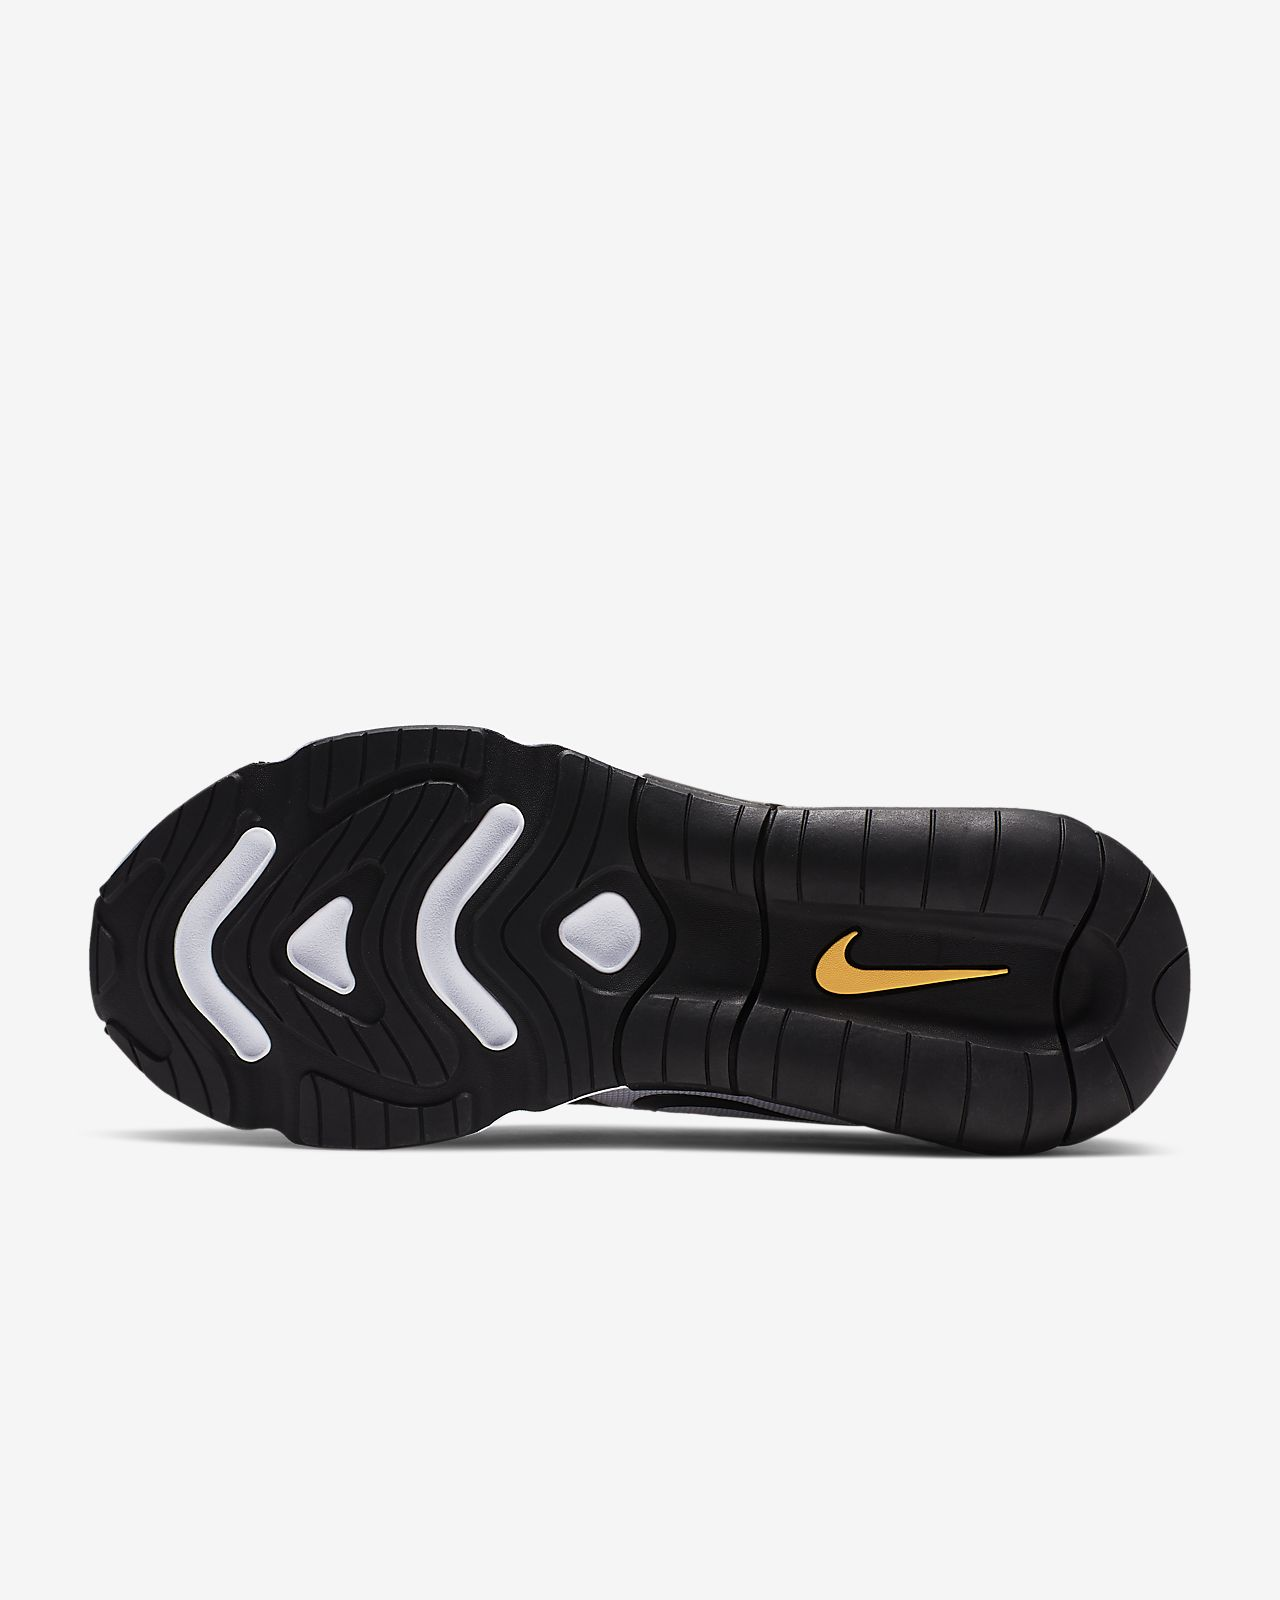 2002000 Air Homme Nike Chaussure World StagePour Max Y6f7gvby